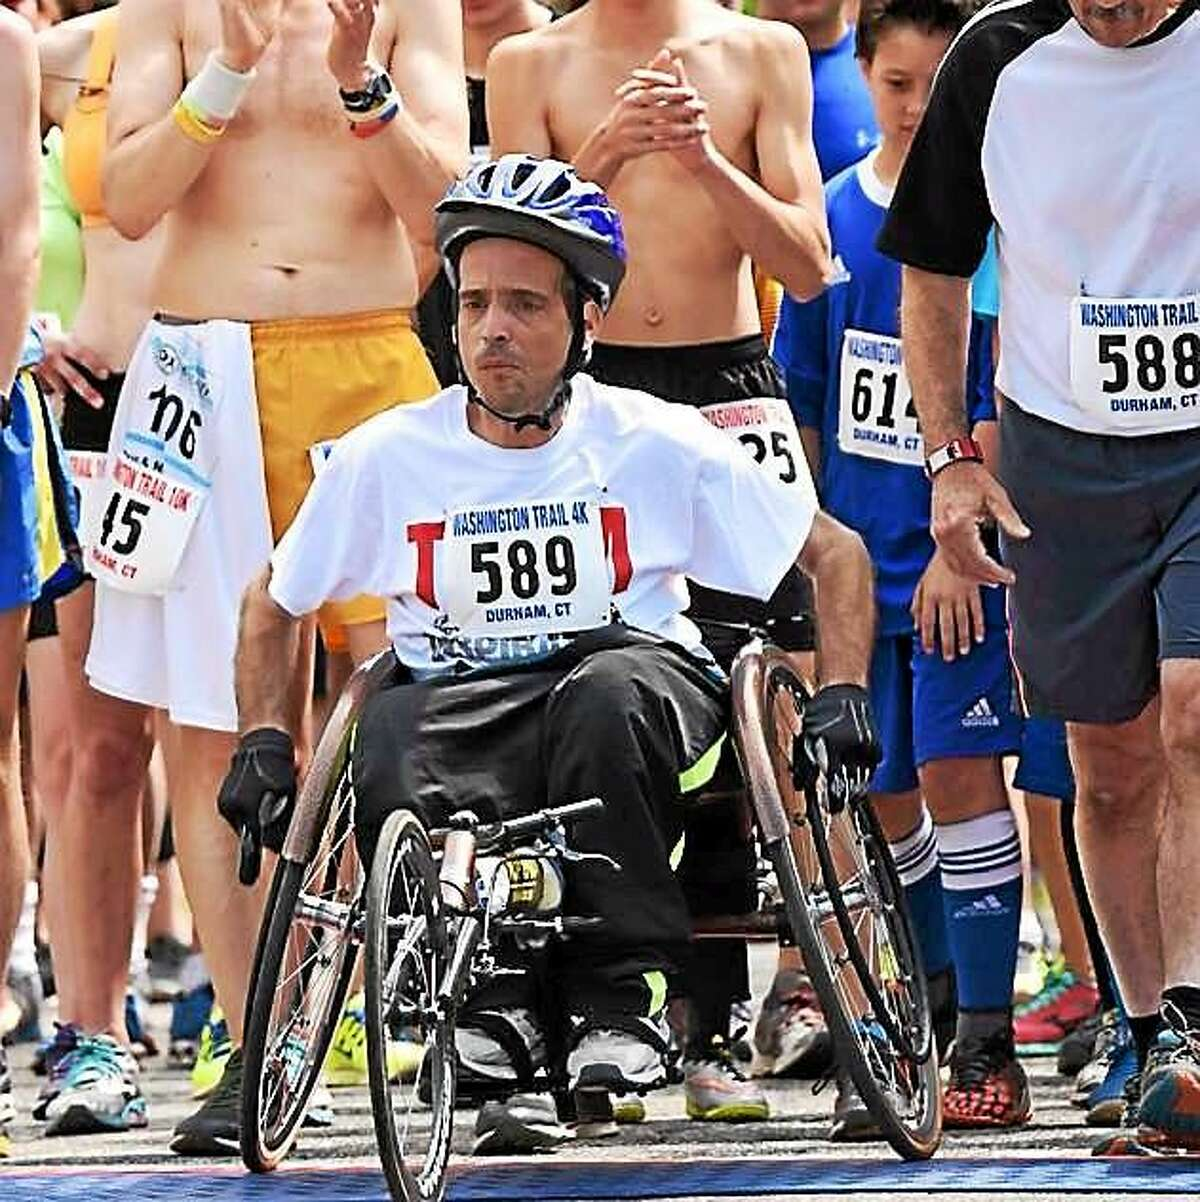 Road racer Steve Anastasio is vying for a spot on the cover of Runner's World. His submitted shot shows Anastasio high-fiving a young spectator from his racing wheelchair during the Hilltop 10K in Leicester, Massachusetts.